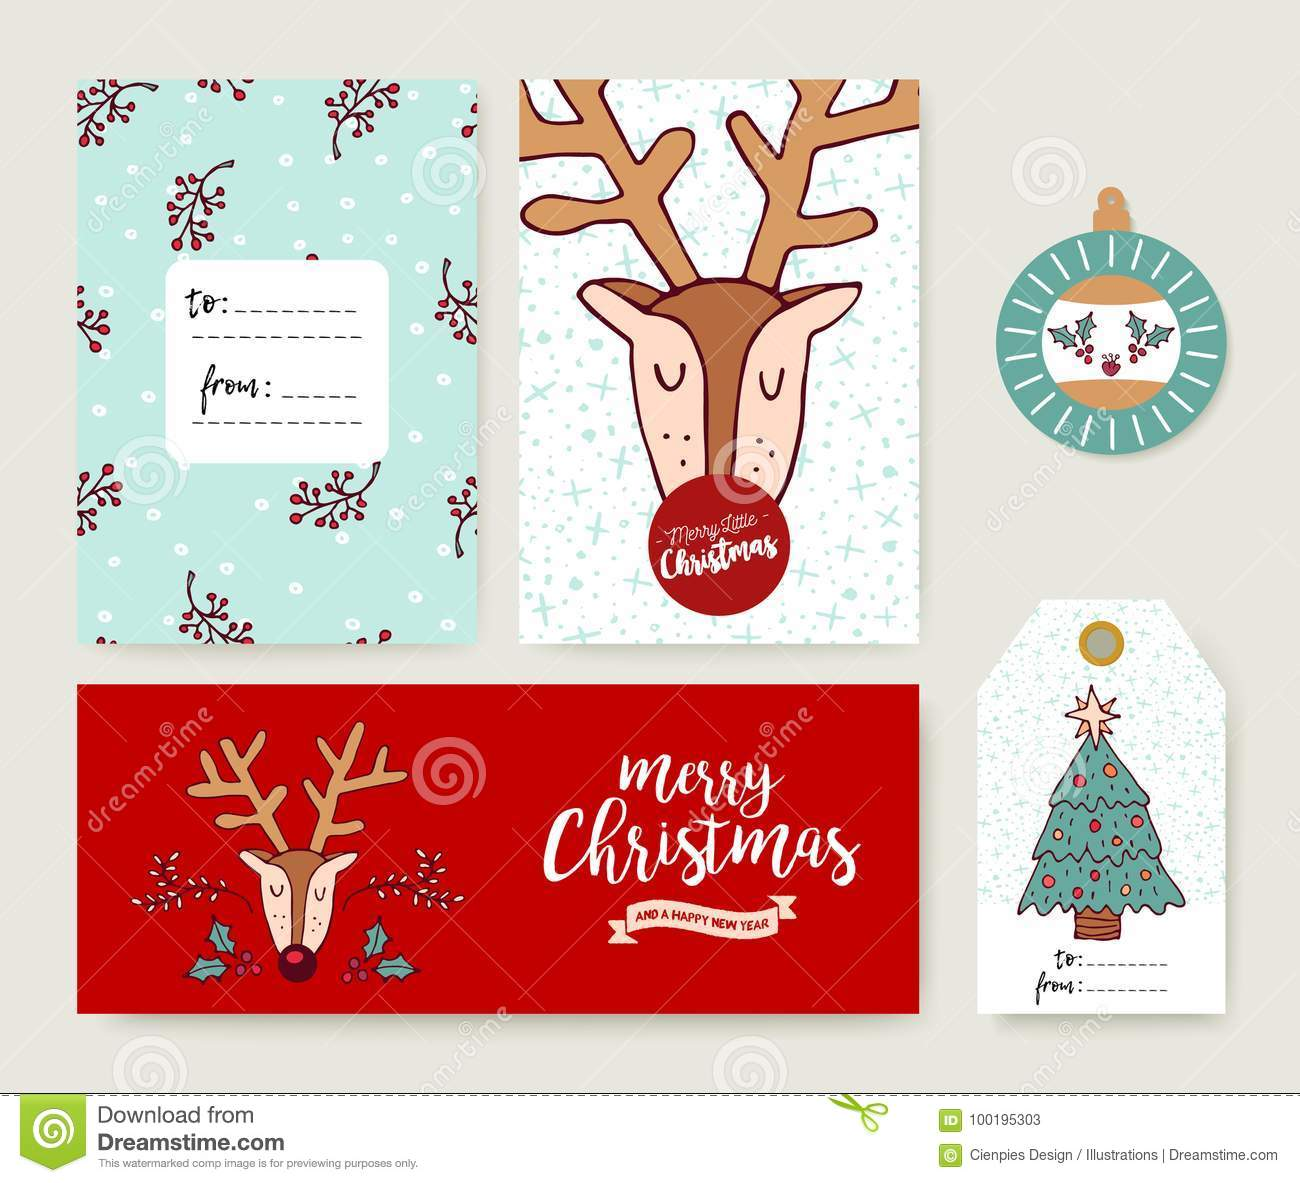 Christmas Themed Template from thumbs.dreamstime.com